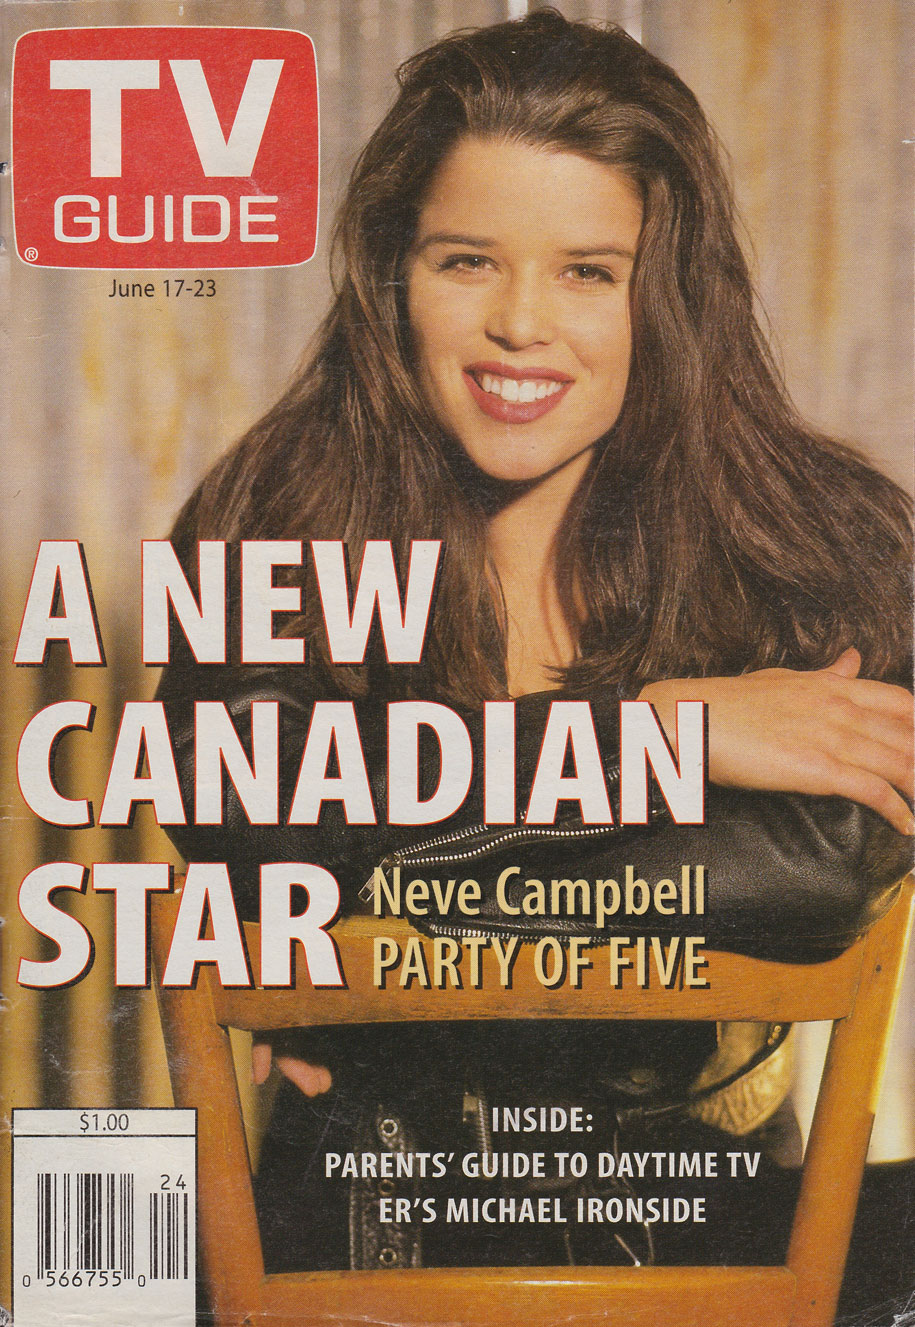 TV Guide June 17 1995 Oshawa-Peterborough Edition Front Cover